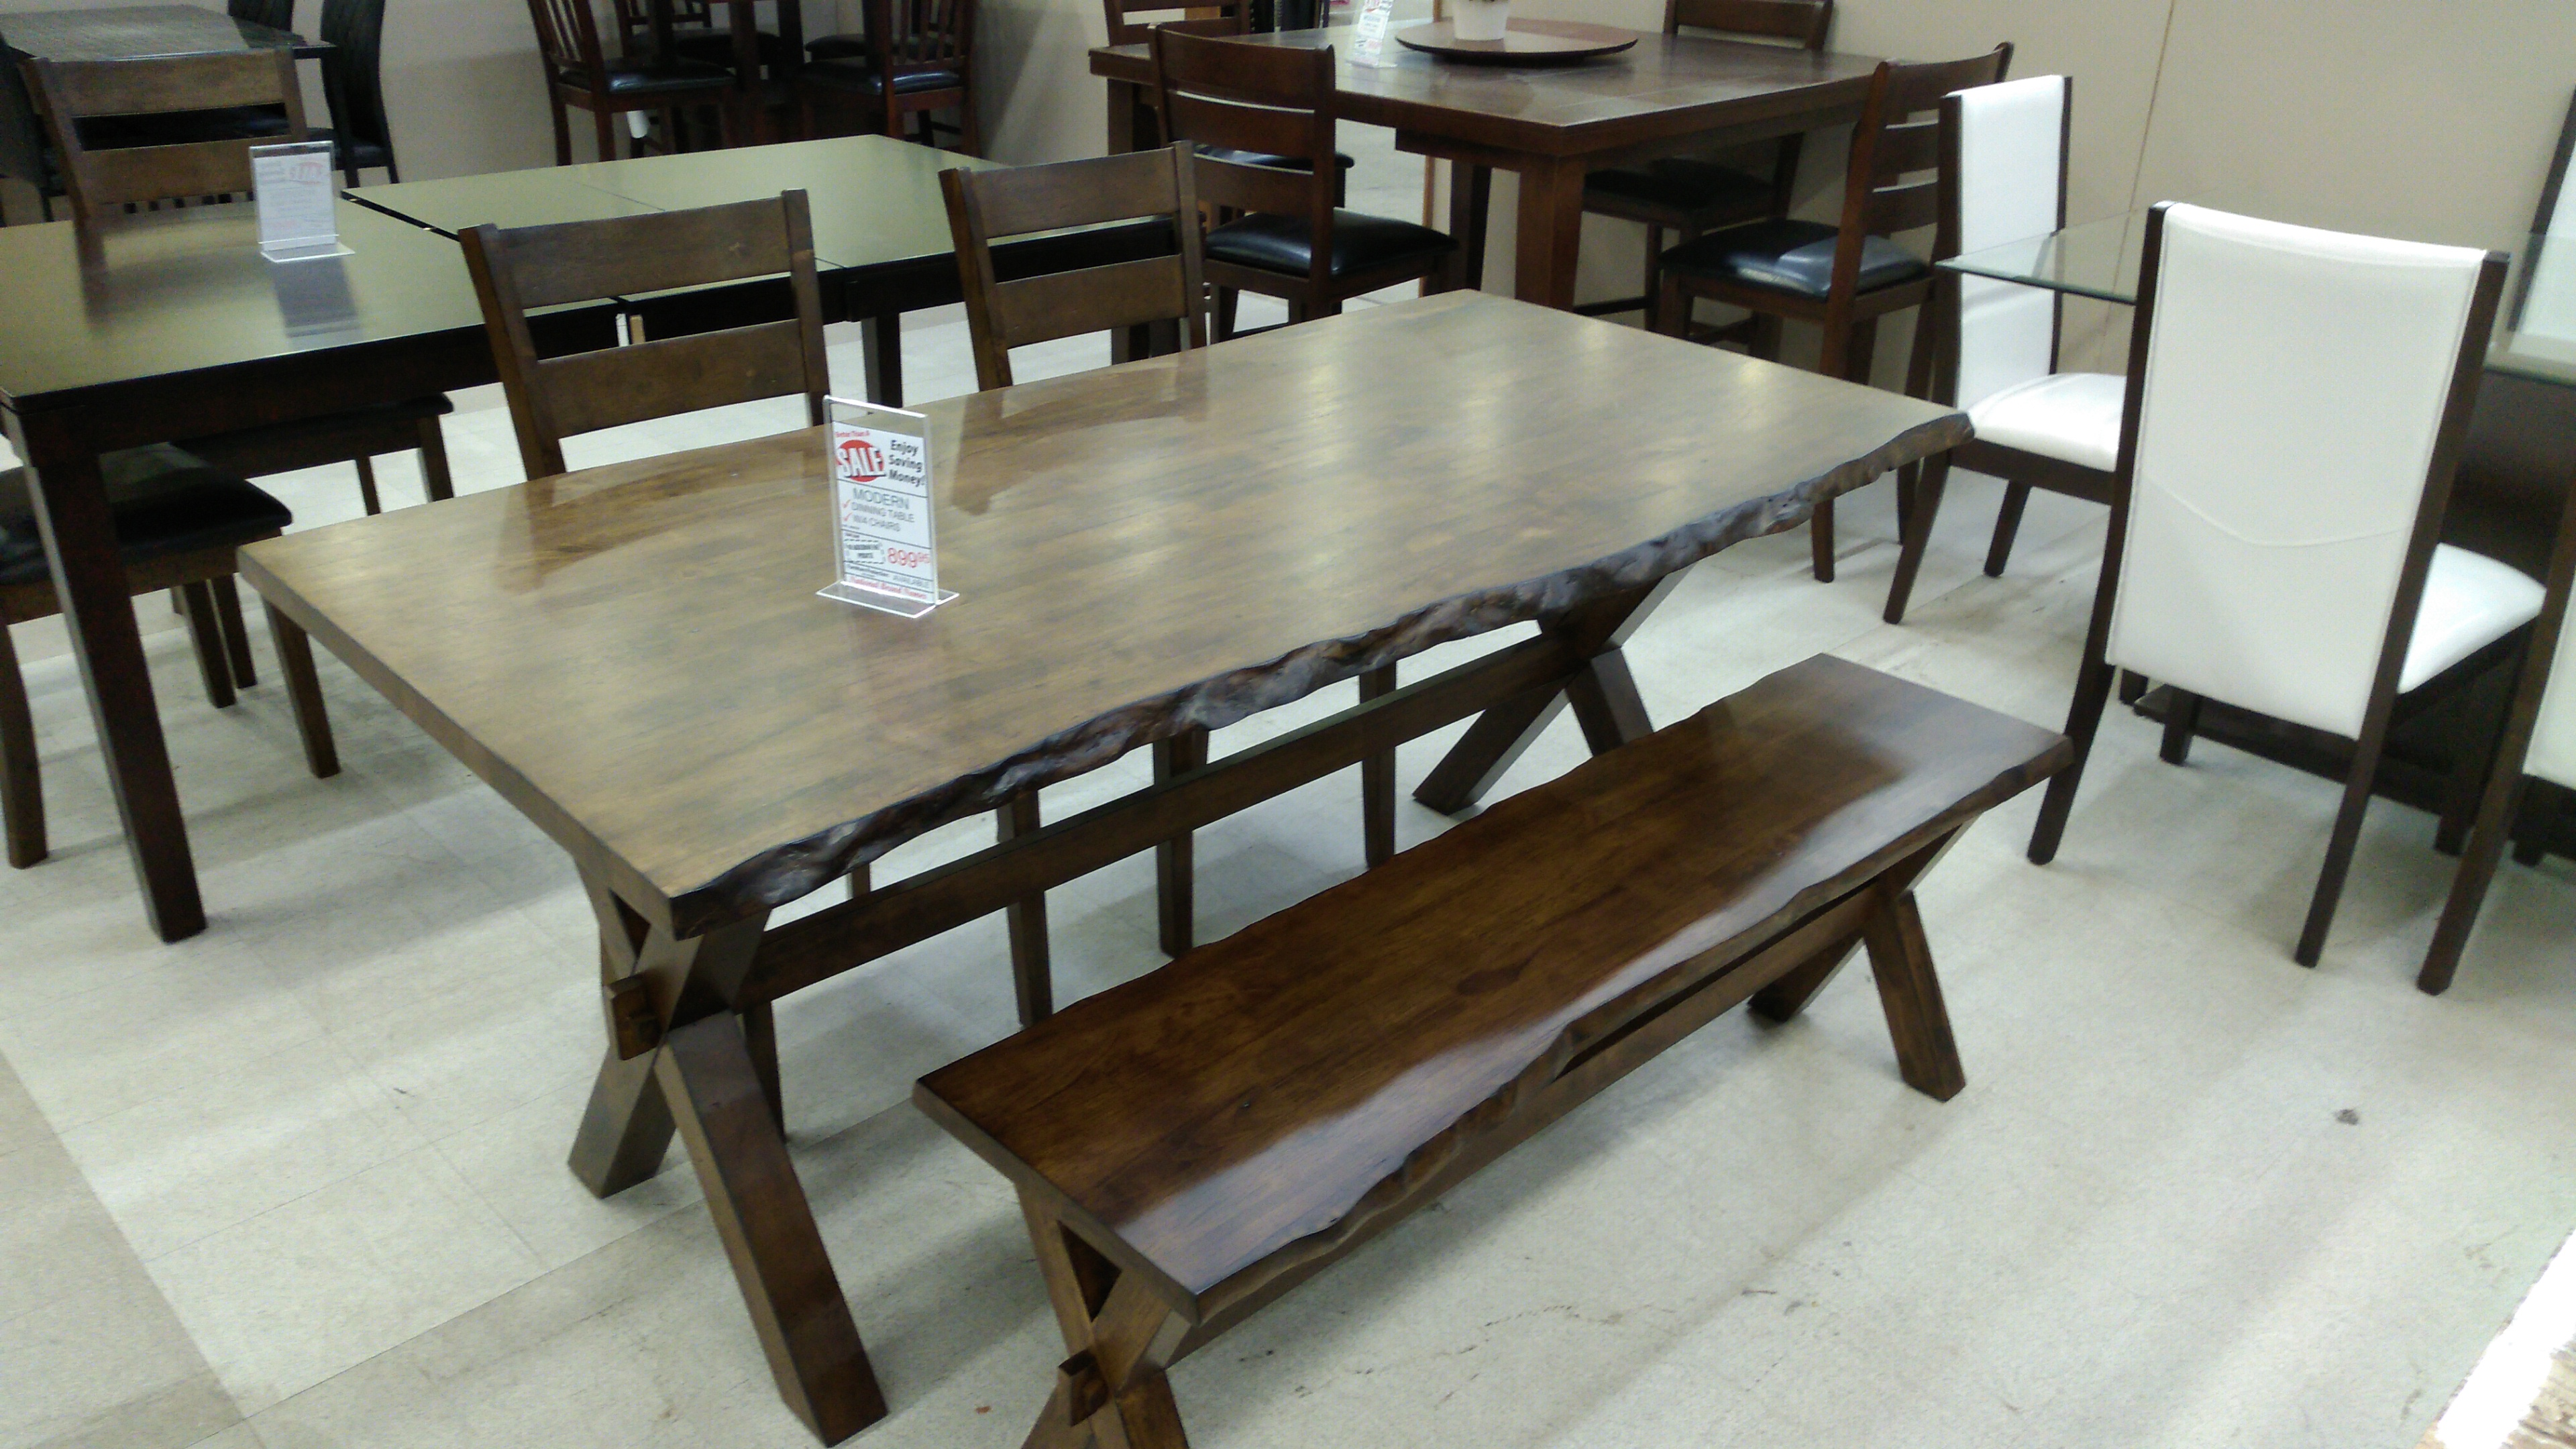 Pleasing 5020 Table 2 Chairs And Bench Interior Design Ideas Gentotryabchikinfo